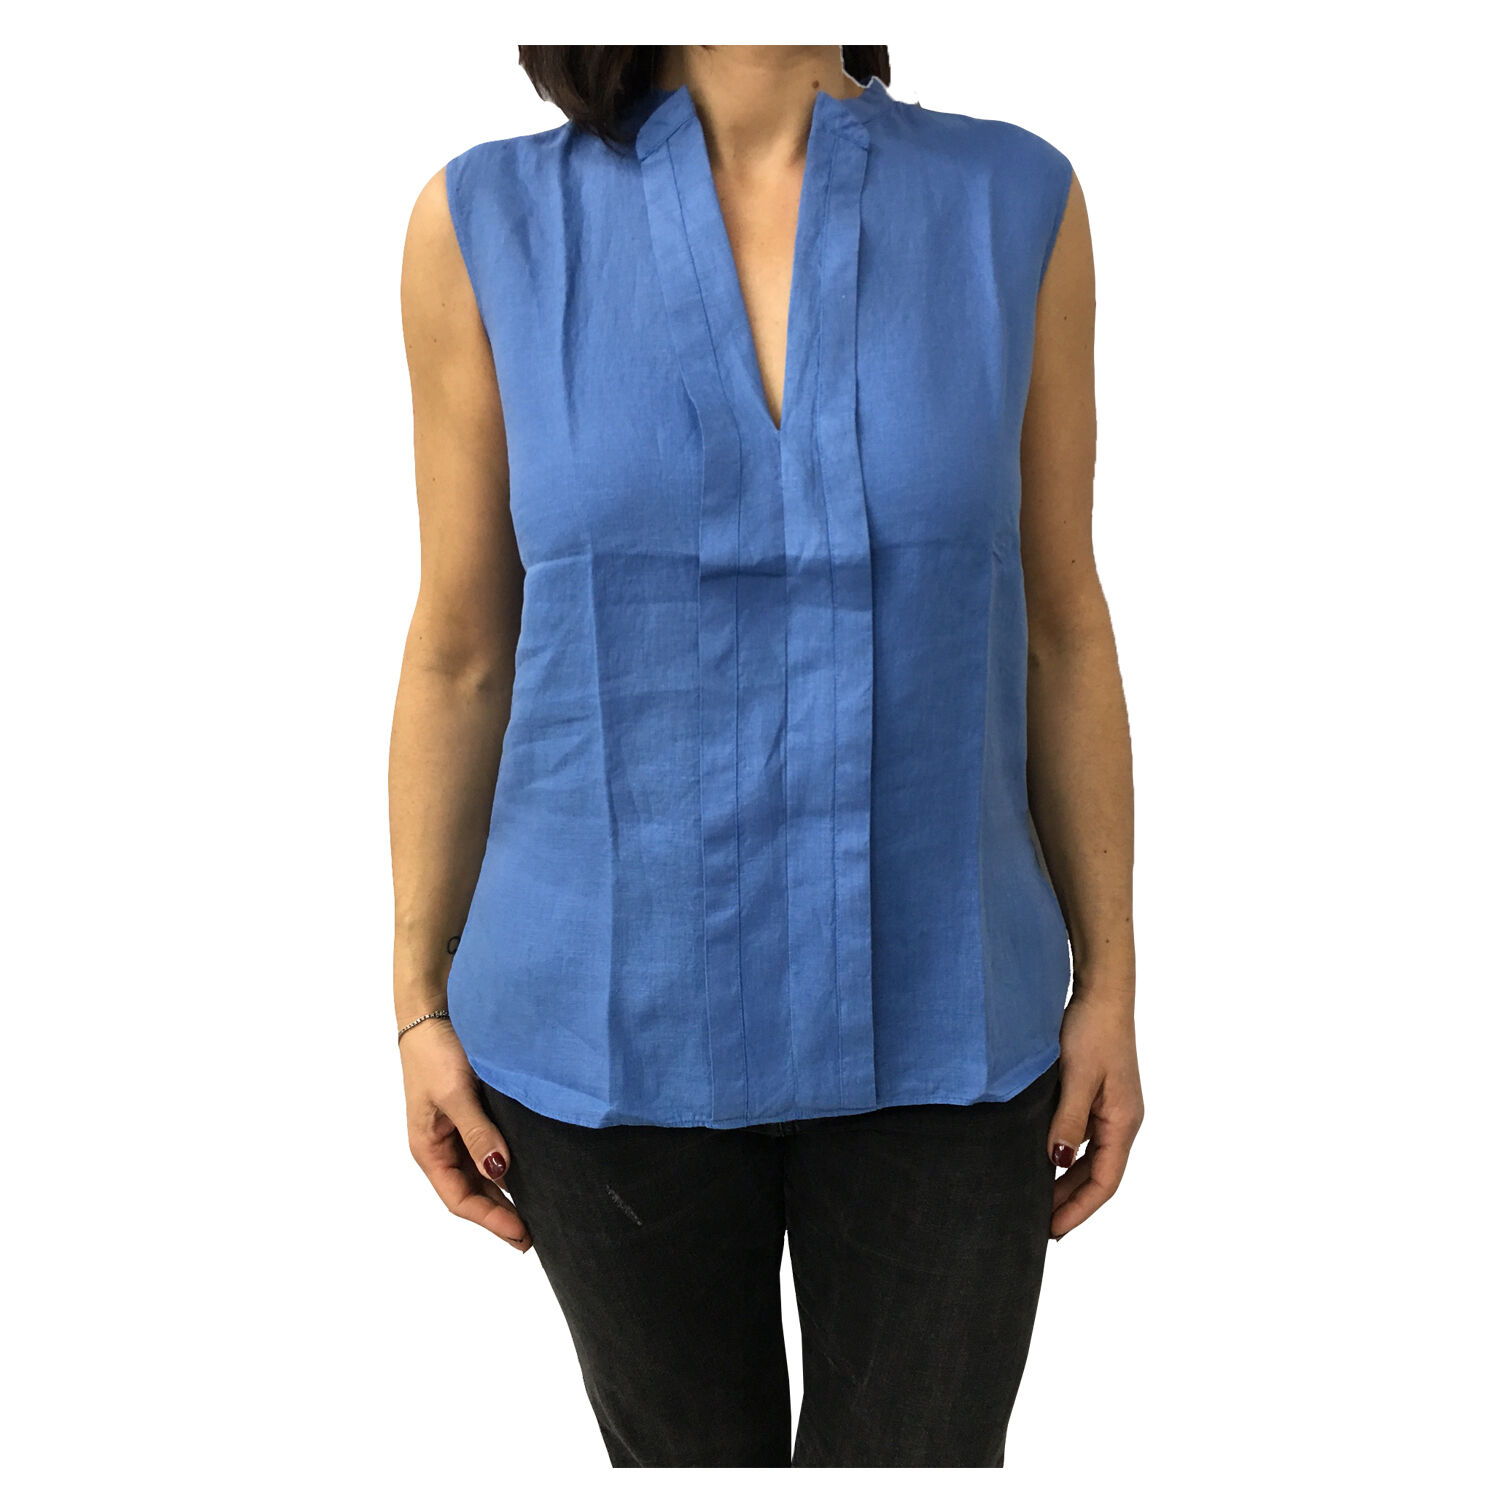 ASPESI damen shirt sleeveless Blau mod H805 C195 100%linen fit regular